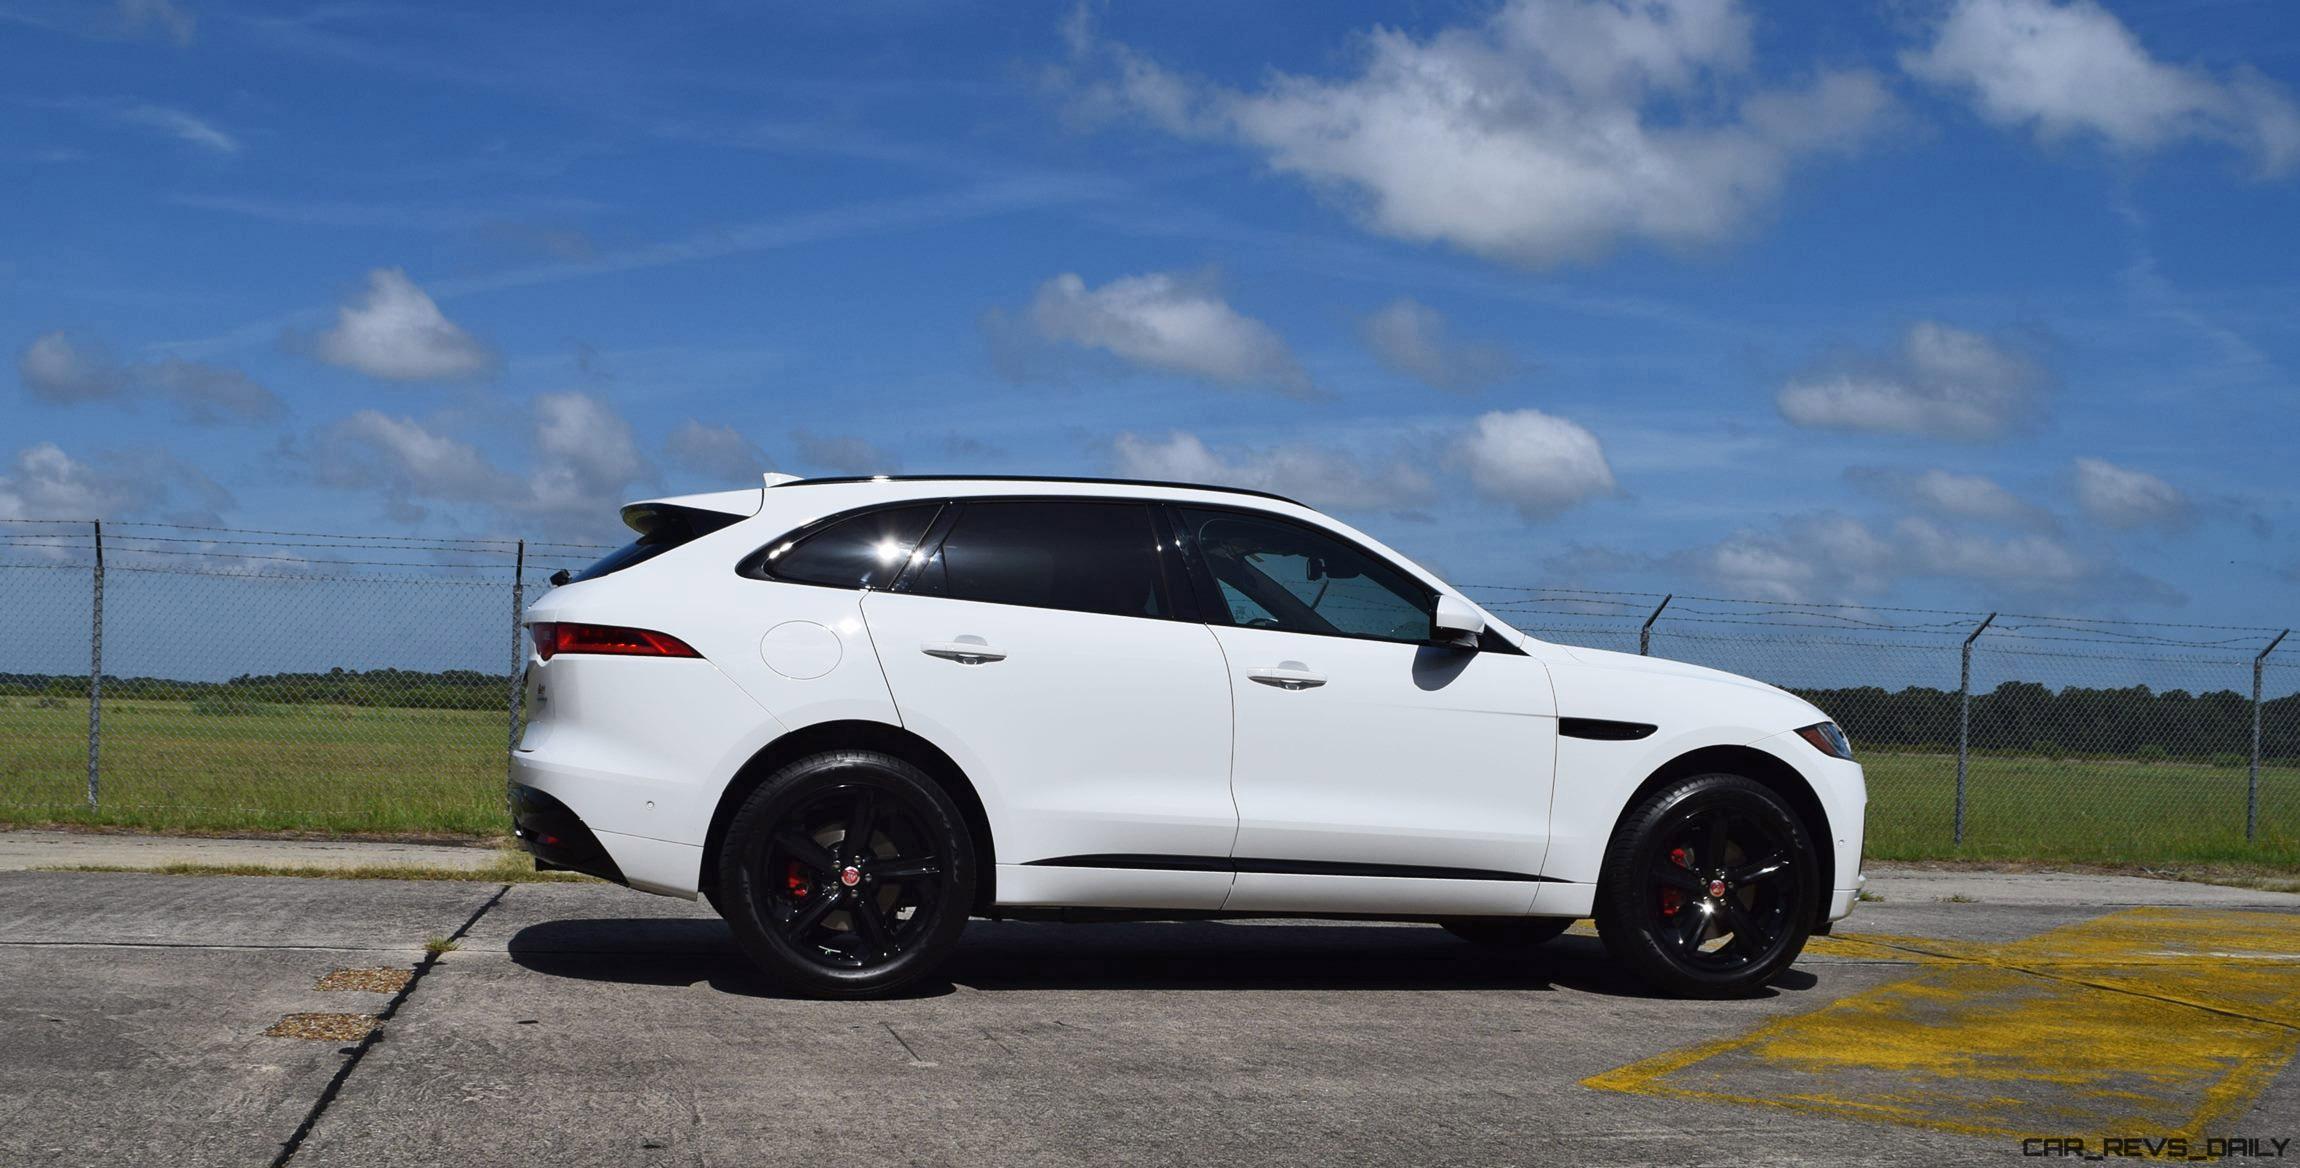 2017 jaguar f pace s usa first drive review video and 140 all new photos car revs. Black Bedroom Furniture Sets. Home Design Ideas